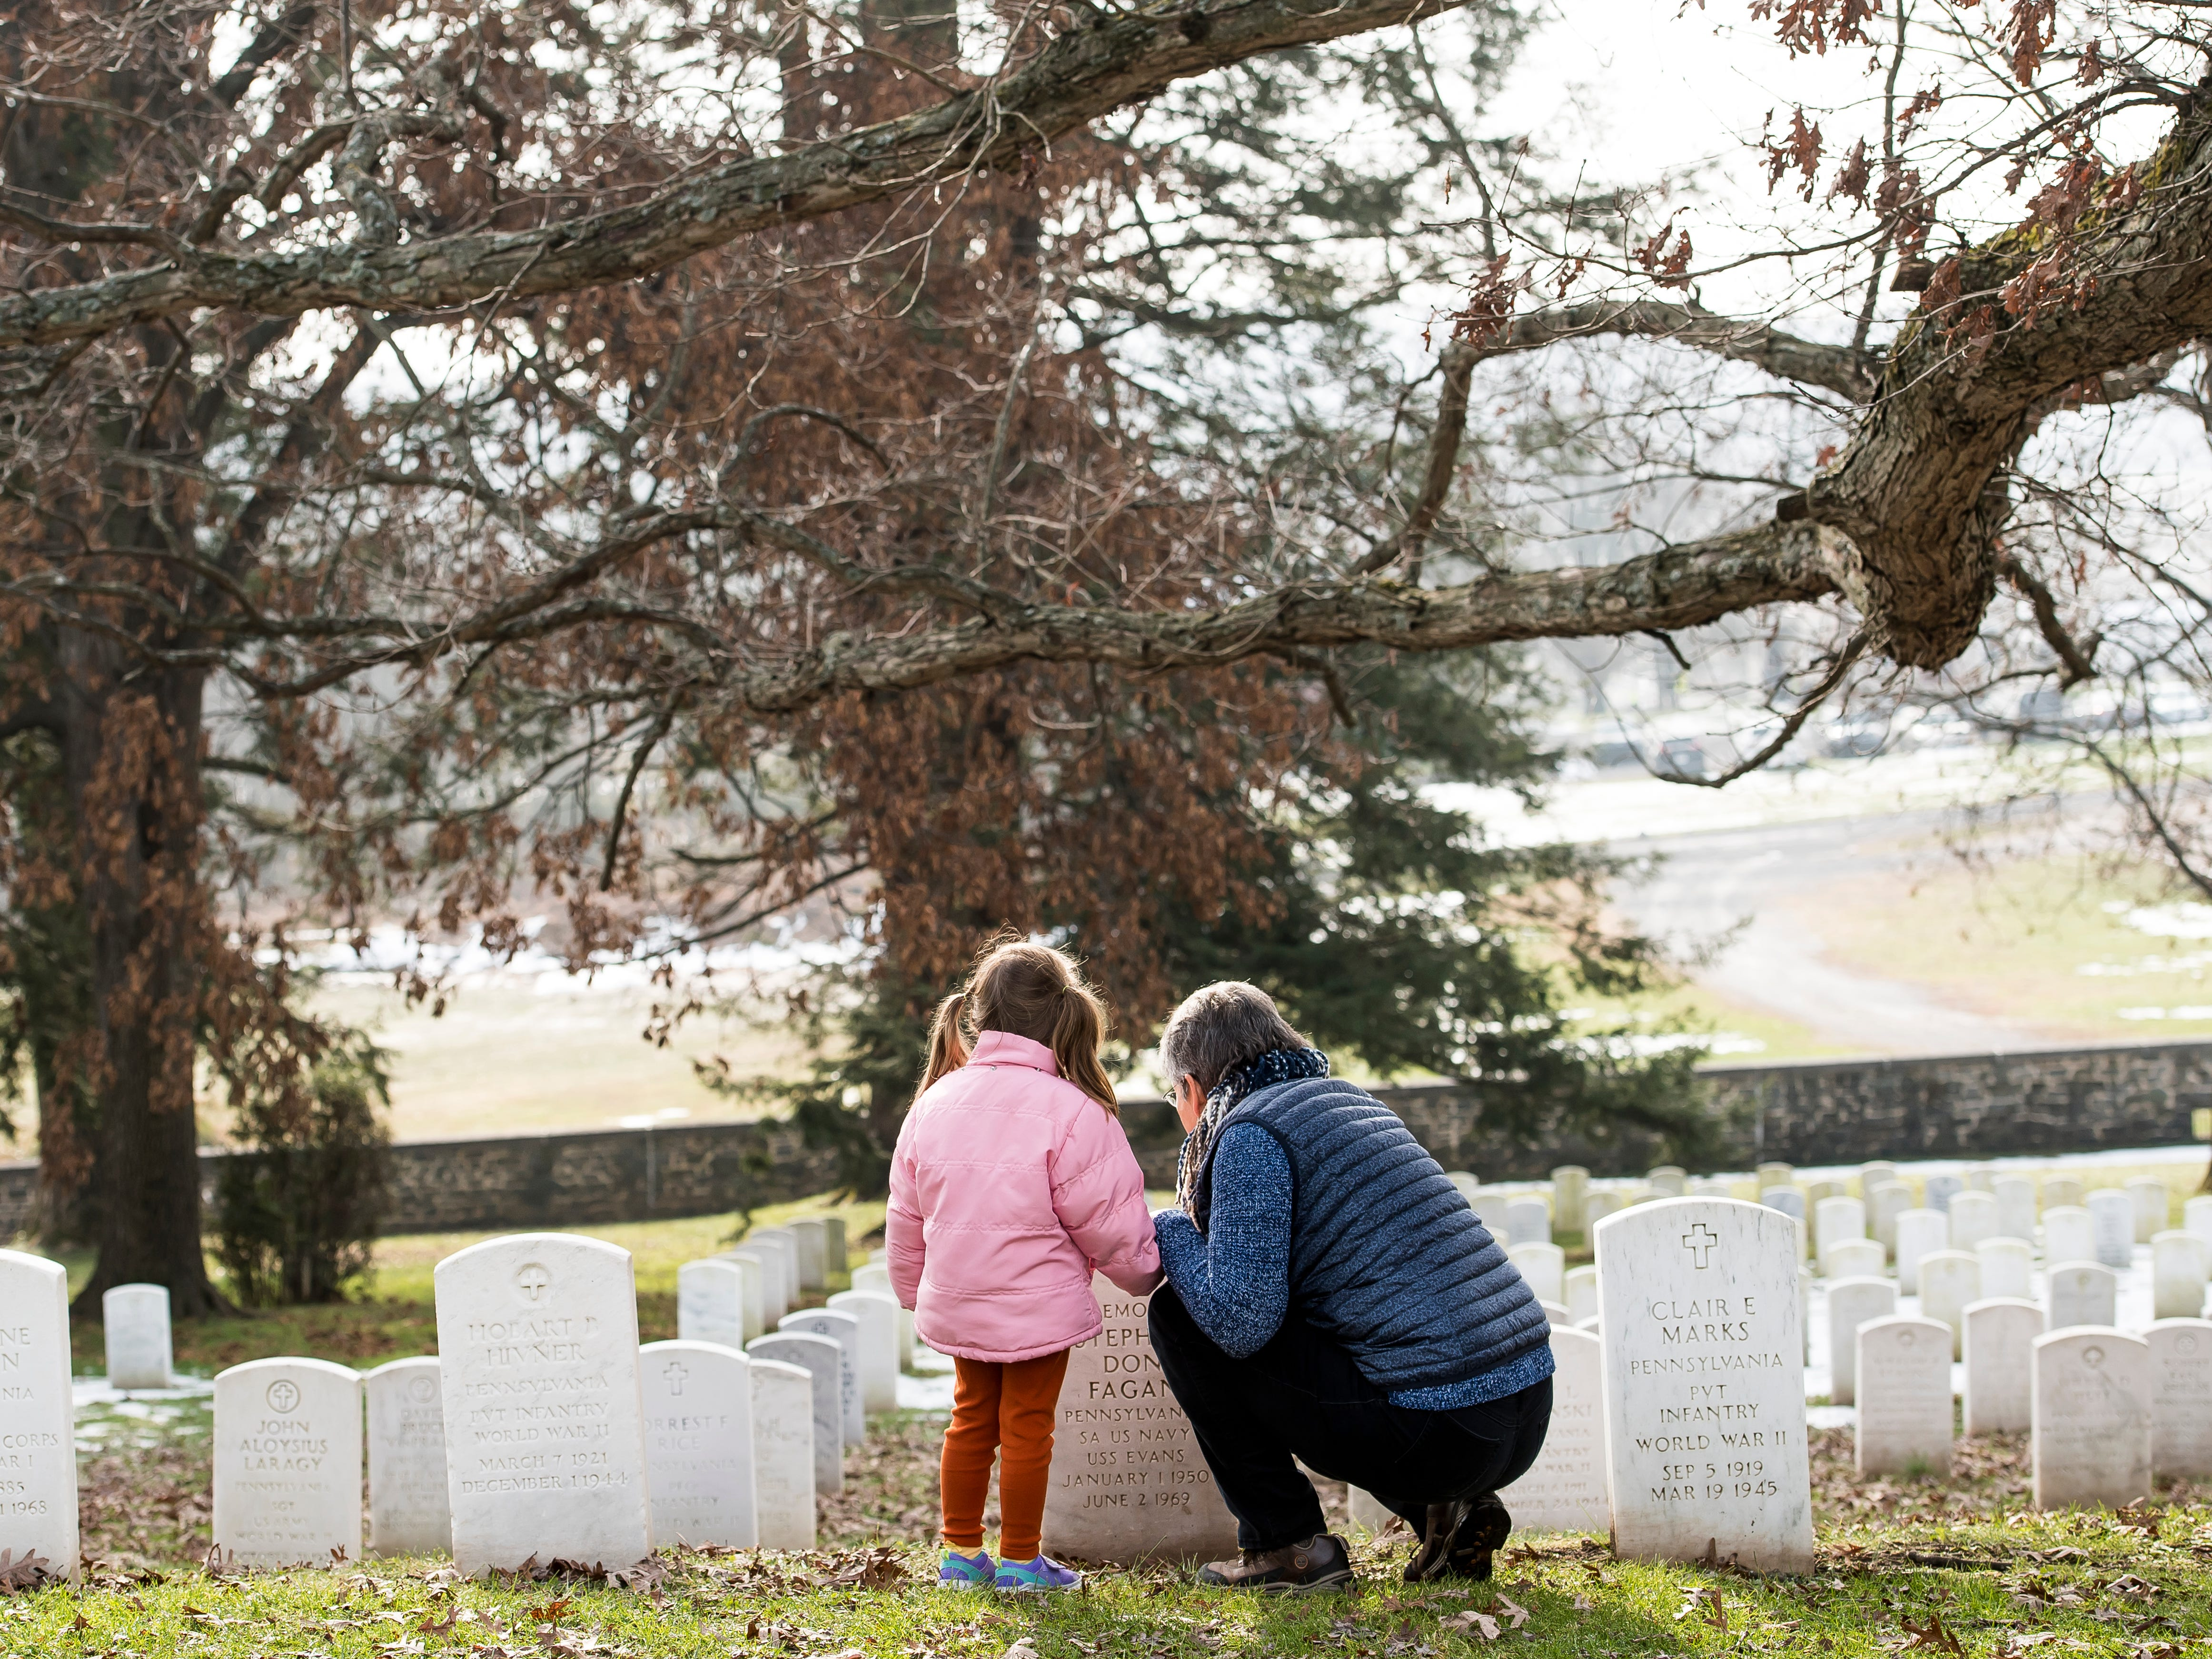 Nancy Kramer and her four-year-old granddaughter, Charlotte Bohnenblust, visit graves in Gettysburg National Cemetery during Dedication Day on Monday, November, 19, 2018.